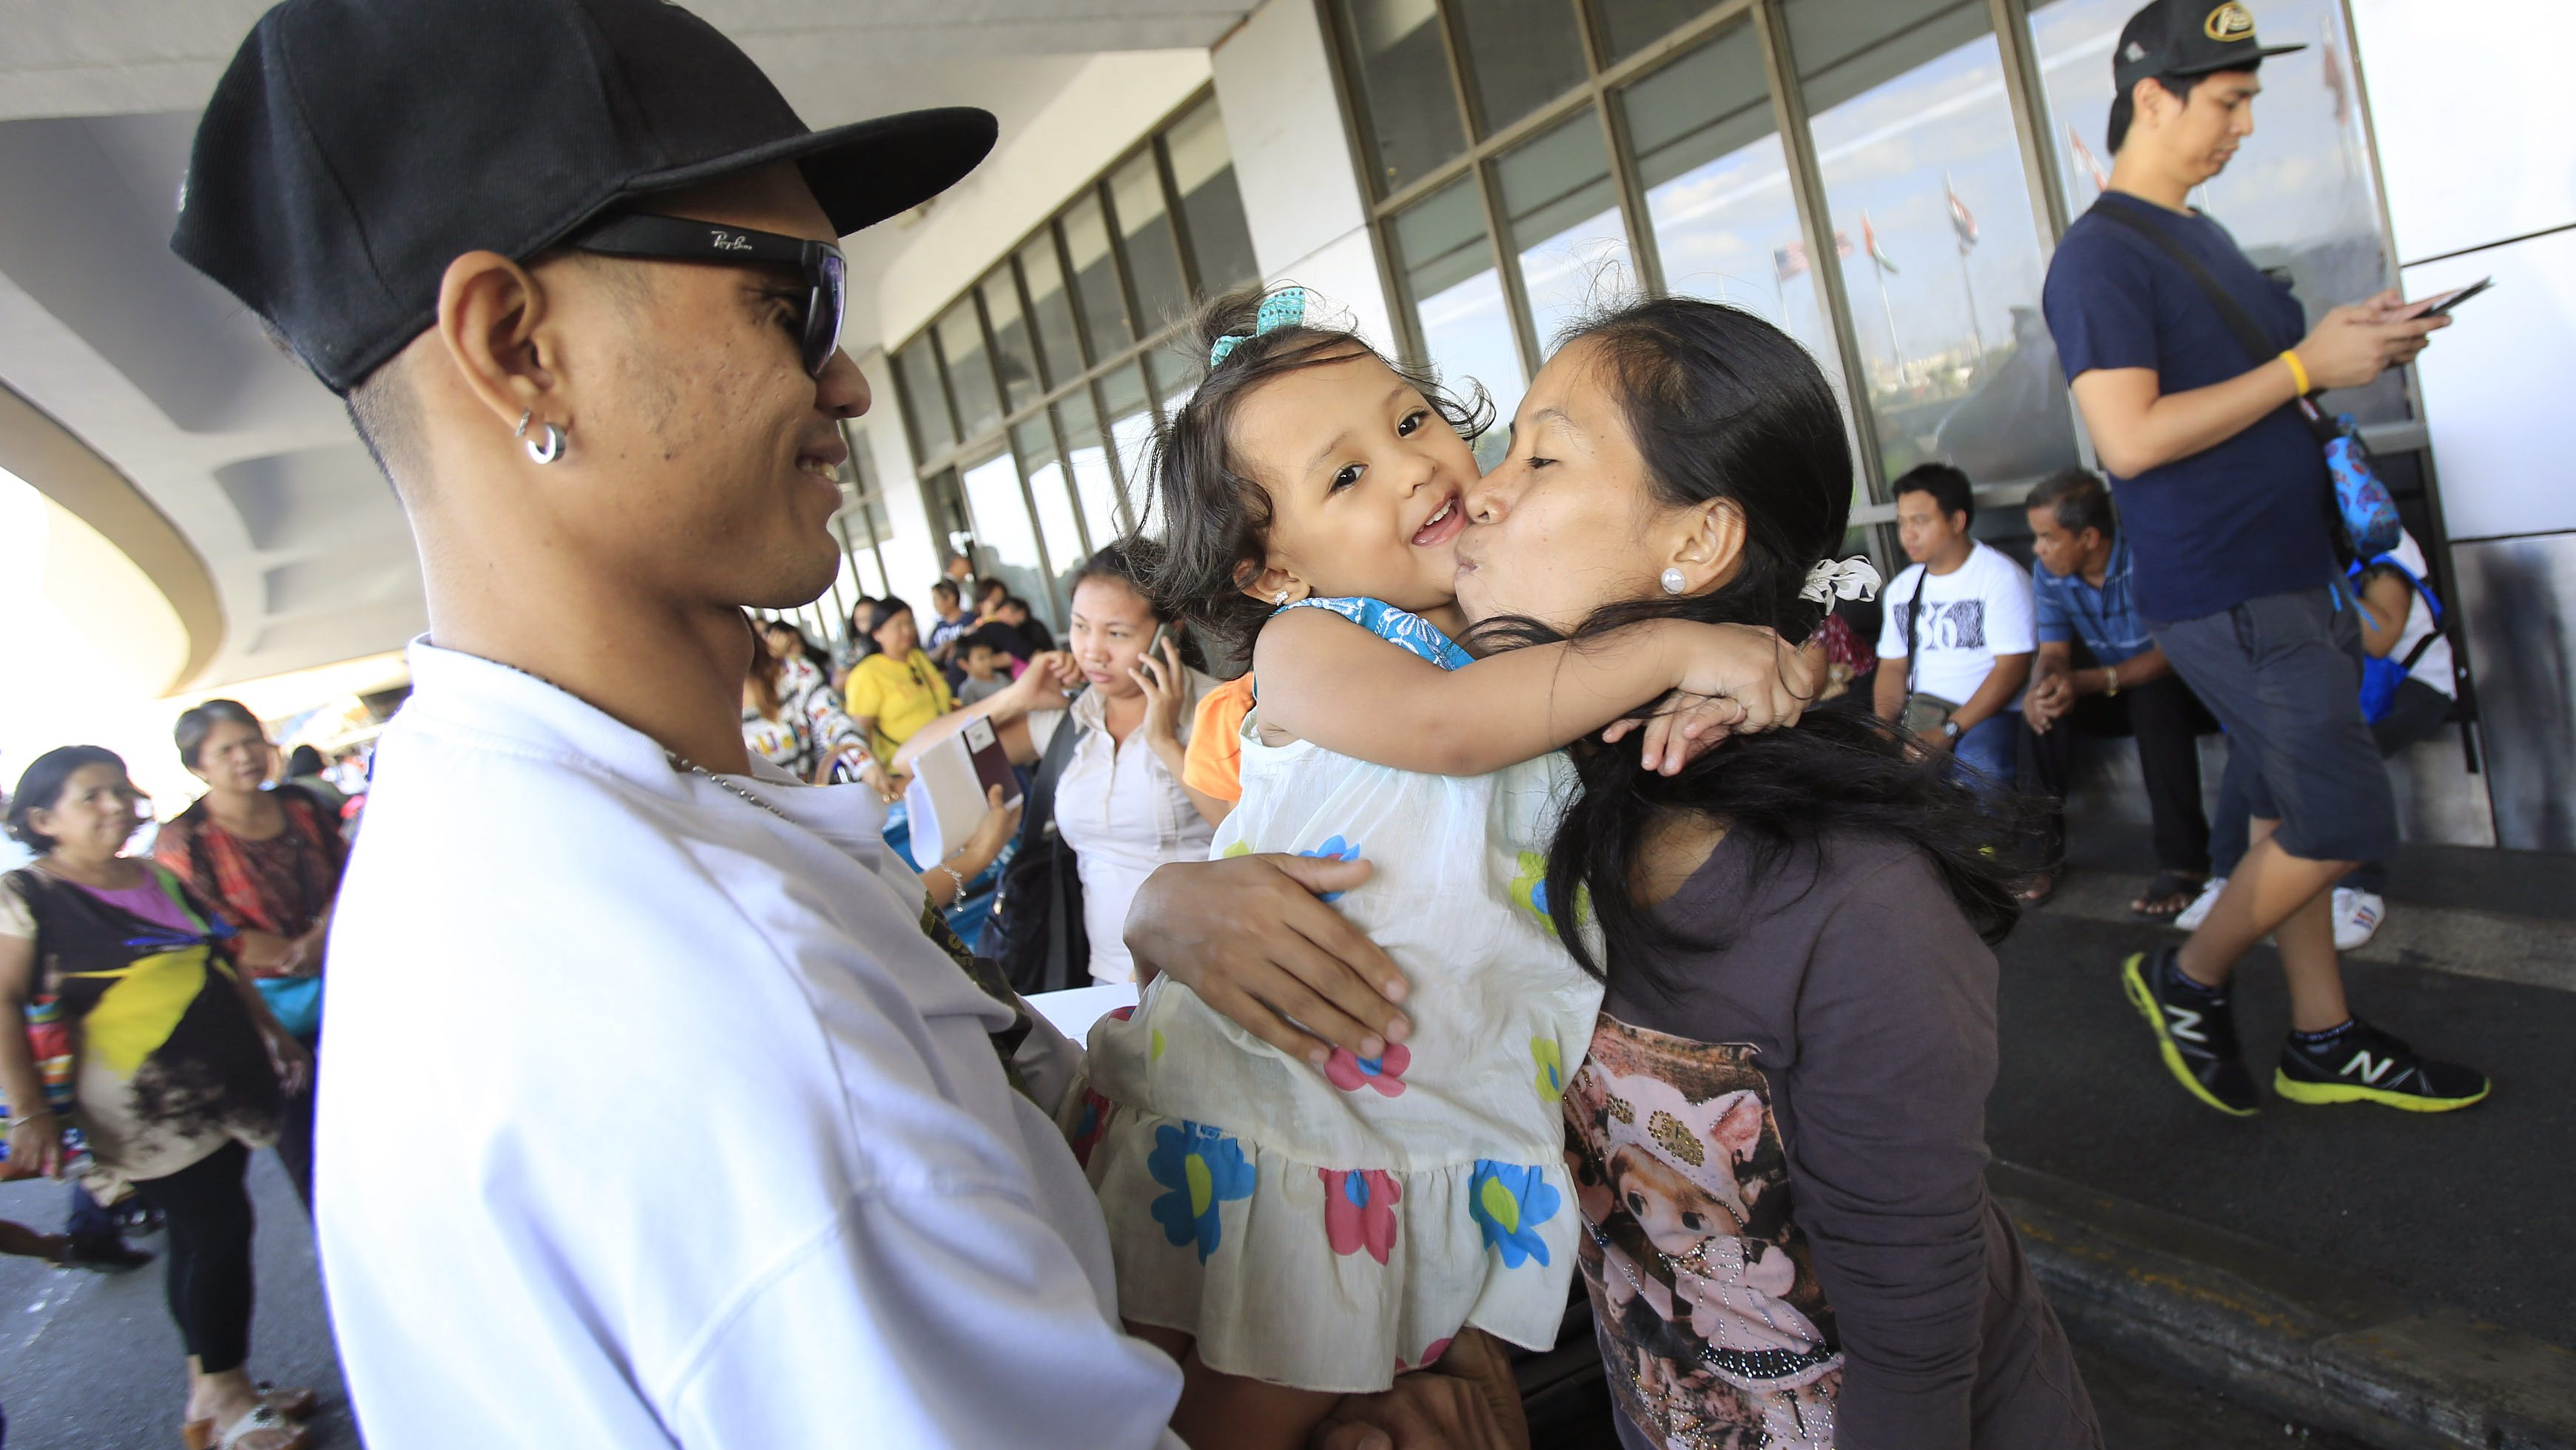 Joan Osillos, an Overseas Filipino Worker (OFW) working in Qatar, hugs and kisses goodbye to her 3-year-old daughter Chelsie, while her husband Mark Anthony looks on before boarding a flight at an international airport in Manila January 12, 2015. Almost 5,000 Filipinos left their homes every day between 2010 and 2013 to seek work overseas, government data shows, most hoping to provide an education for their children and to meet the most basic needs of their families. The strain of decades of labor migration has come with a significant social cost in Asia's largest Catholic community and likely will be addressed by Pope Francis during his first visit to the Philippines on Thursday. Picture taken January 12, 2015.